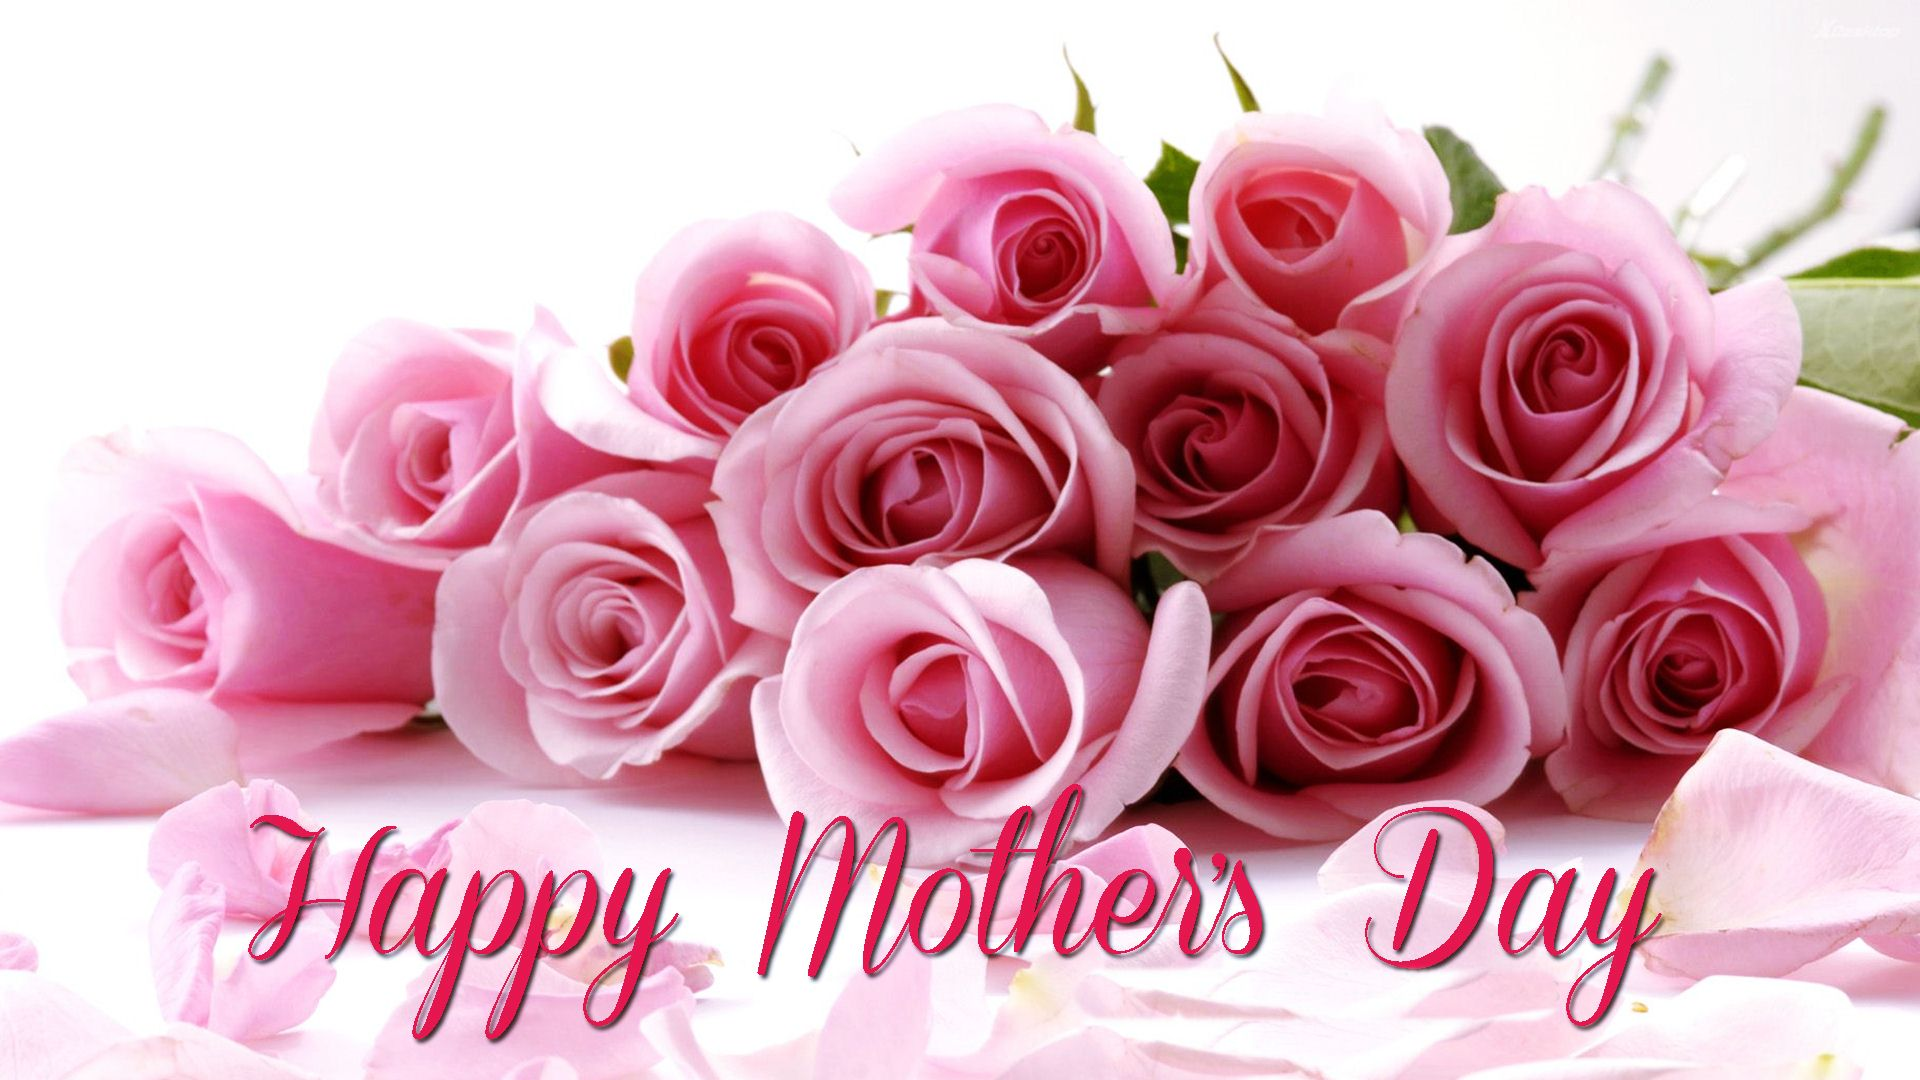 Happy Mothers Day Wallpaper Free Download